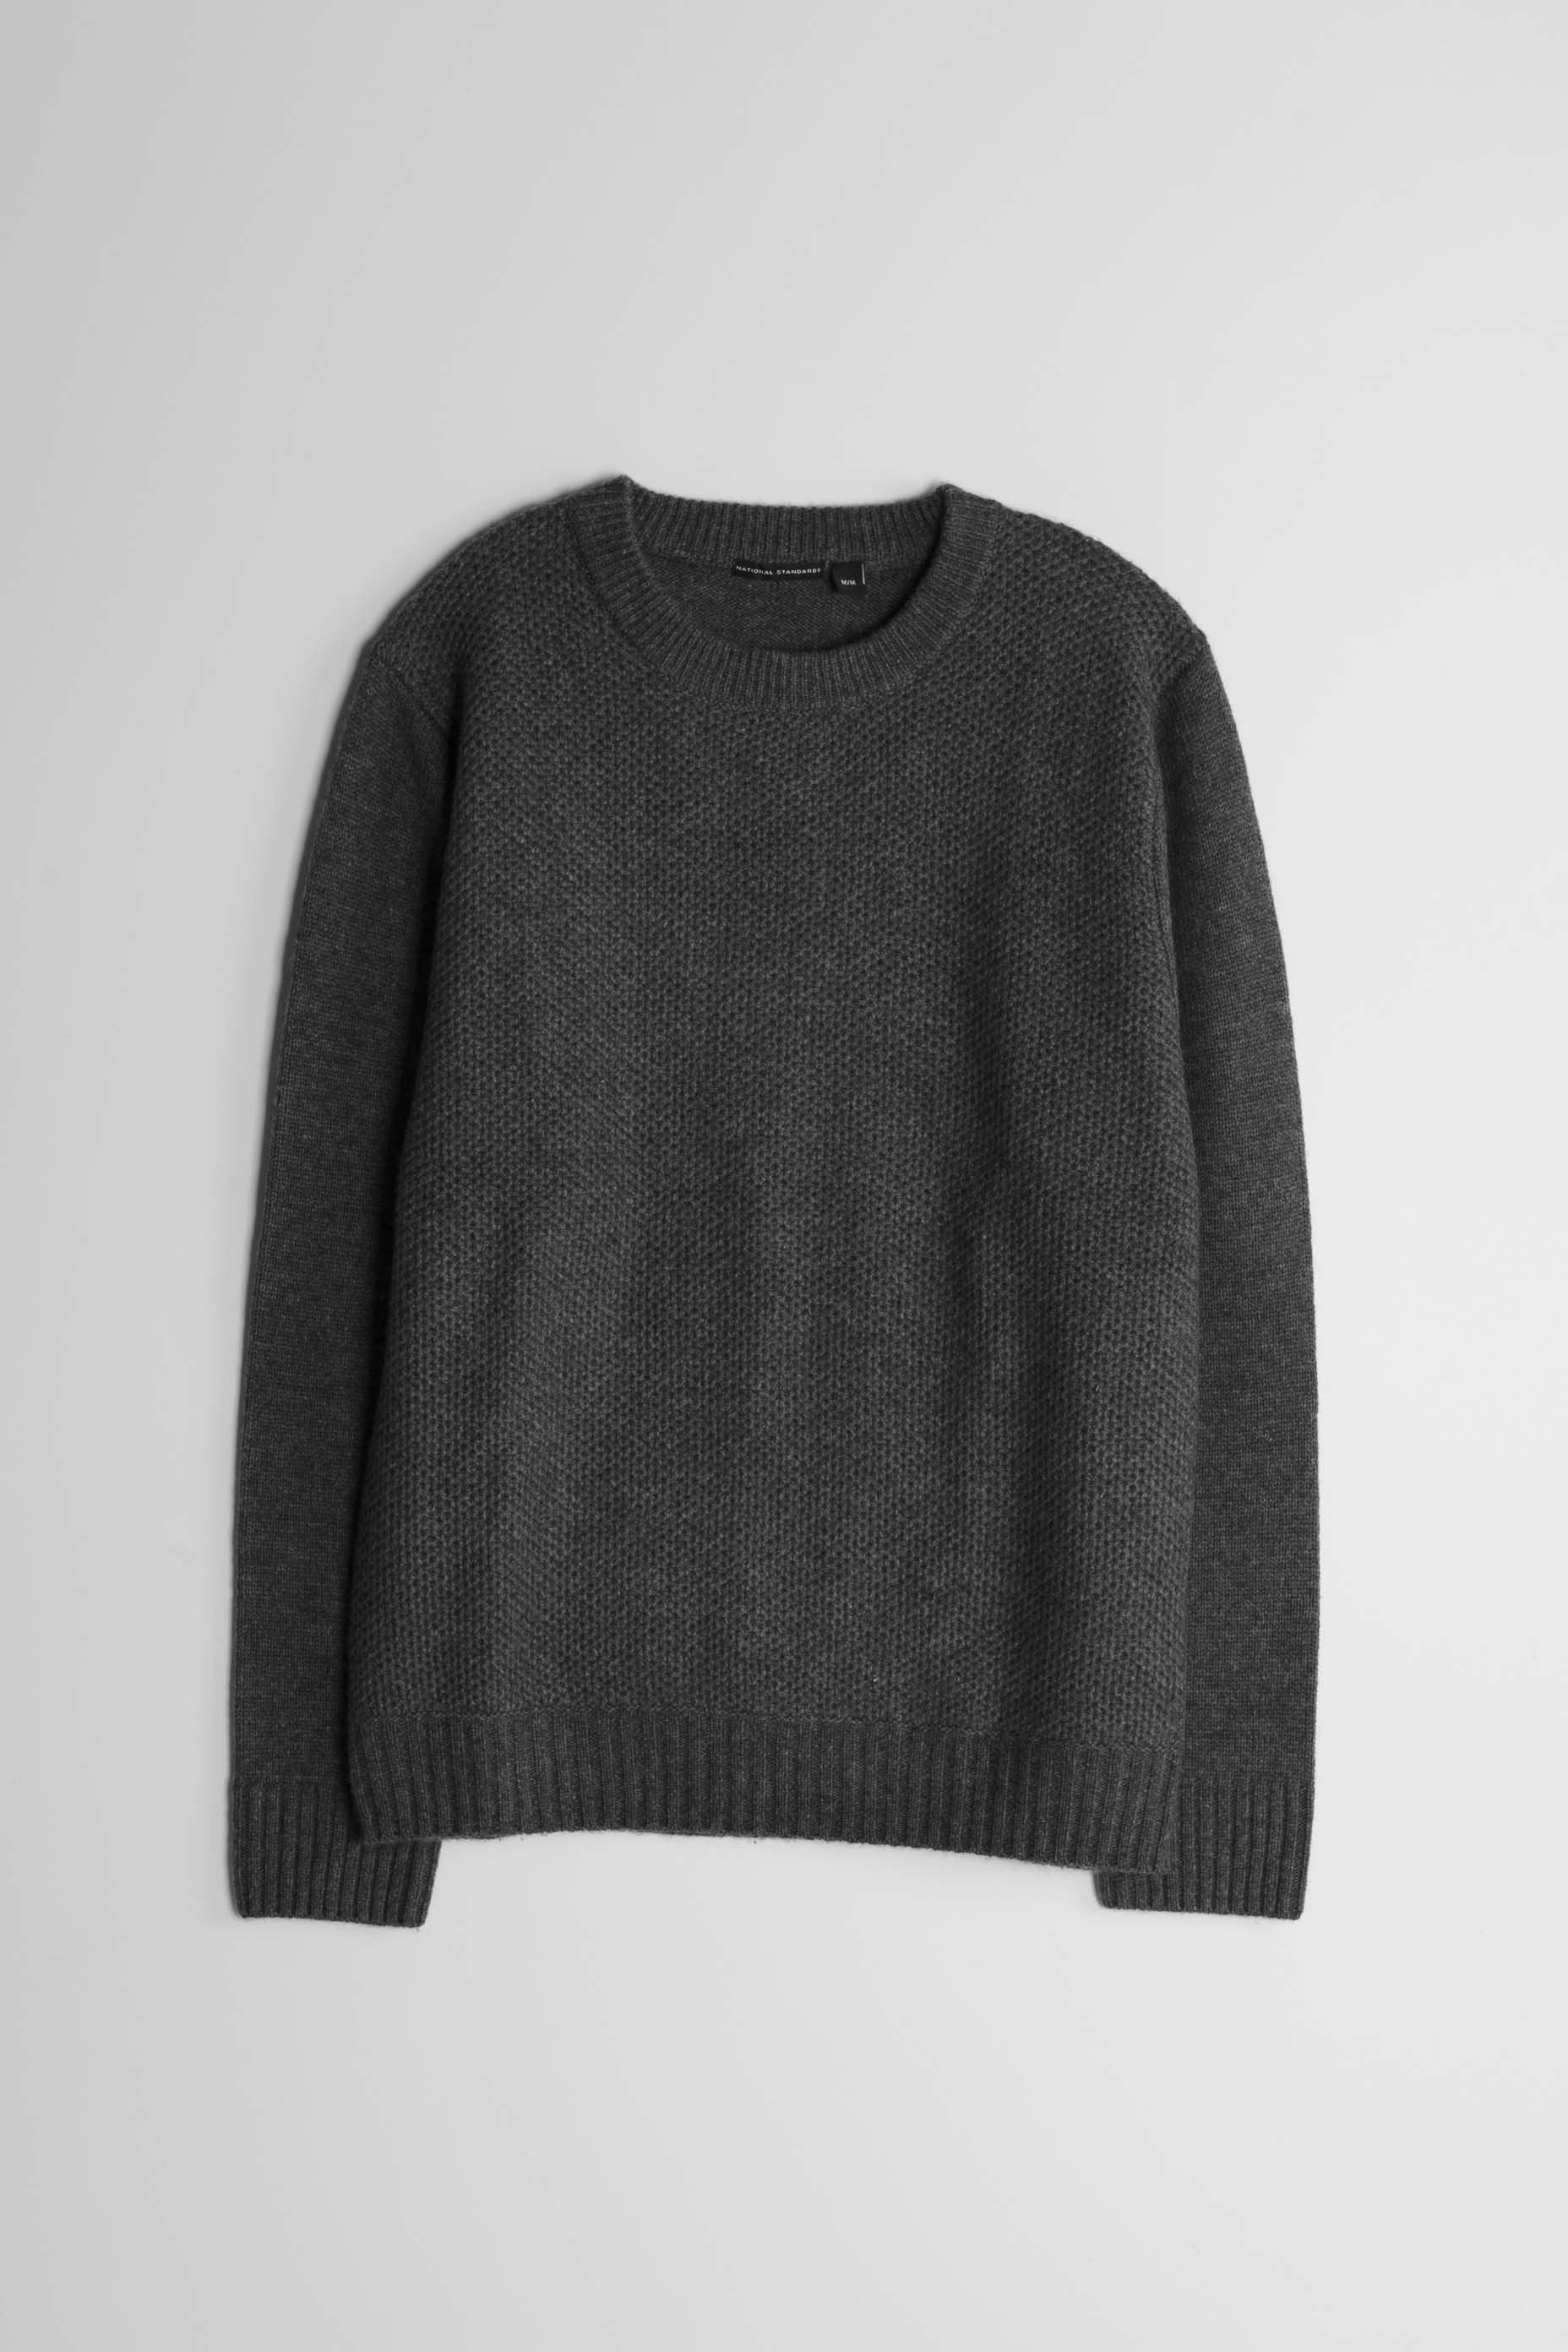 Lambswool Heavy Gauge Crew in Grey 01